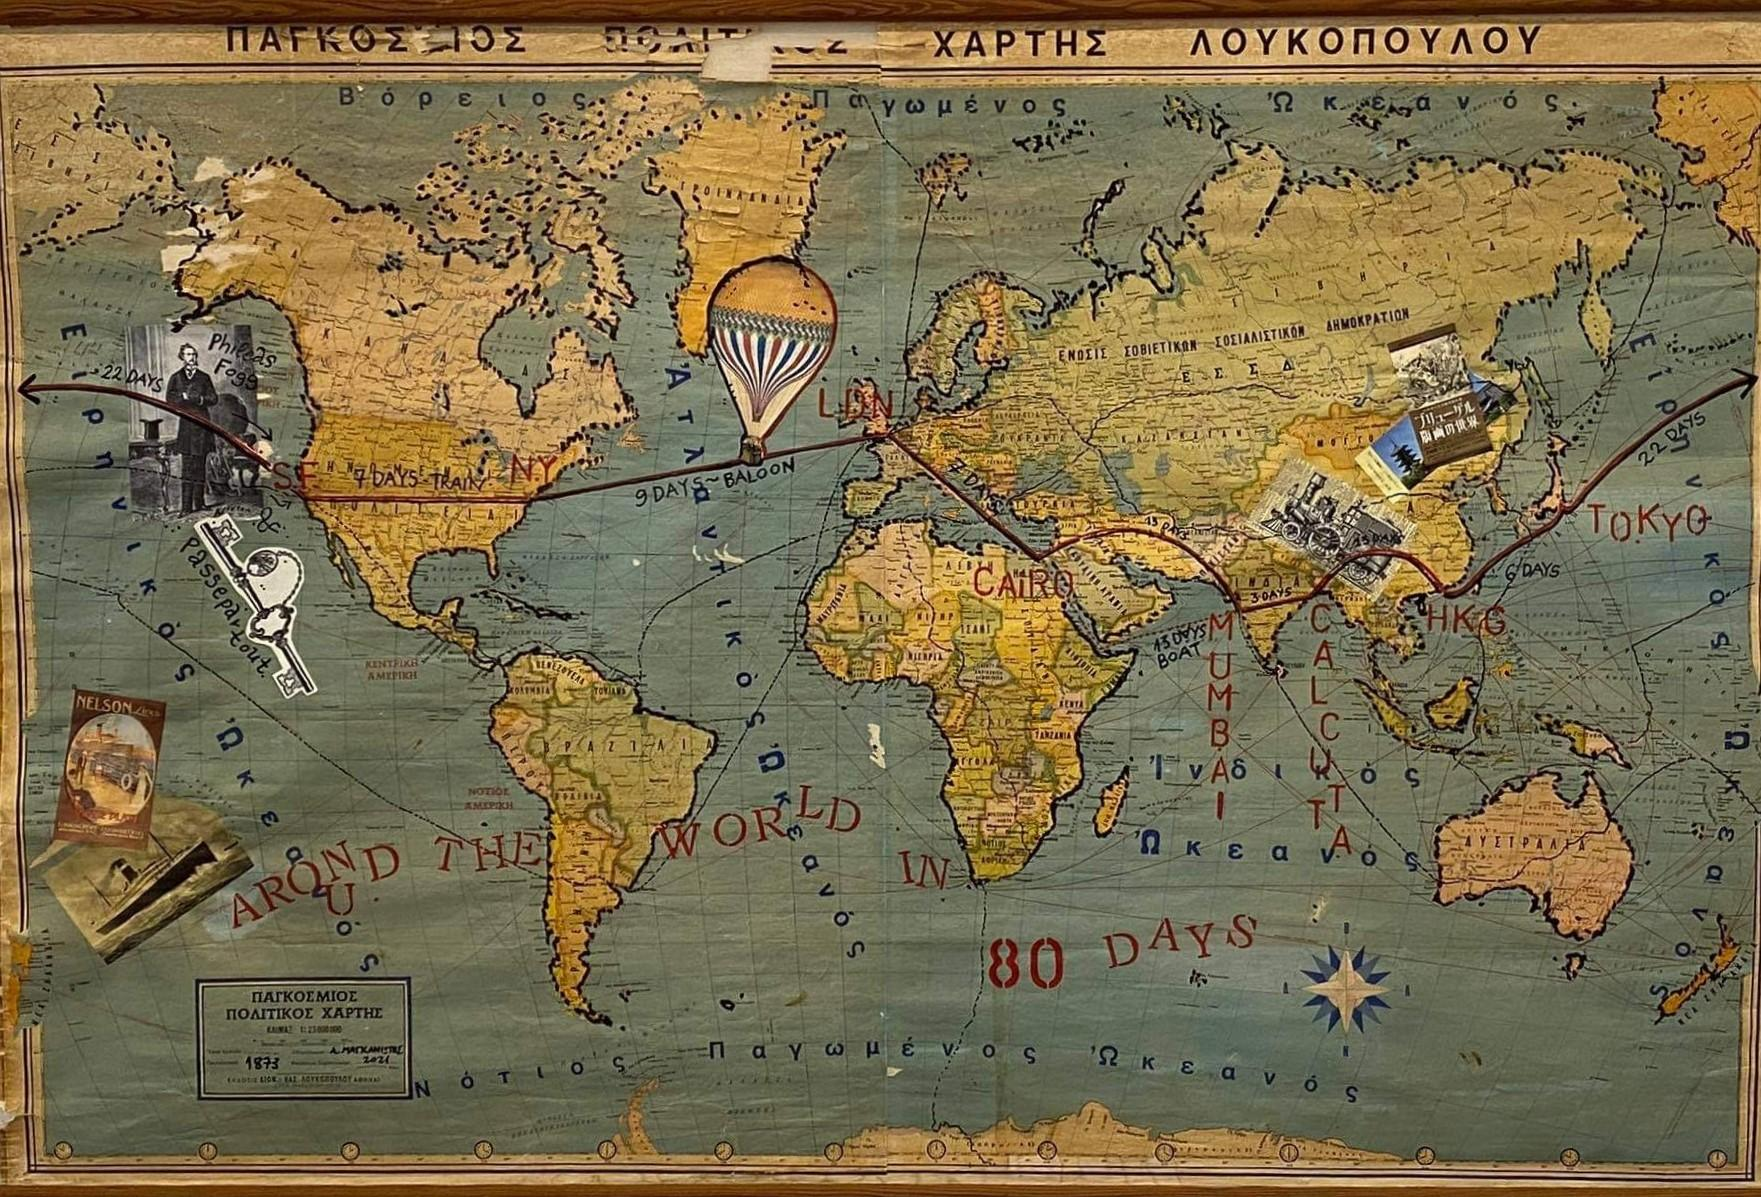 Around the Worlds in 80 Maps - Image 6